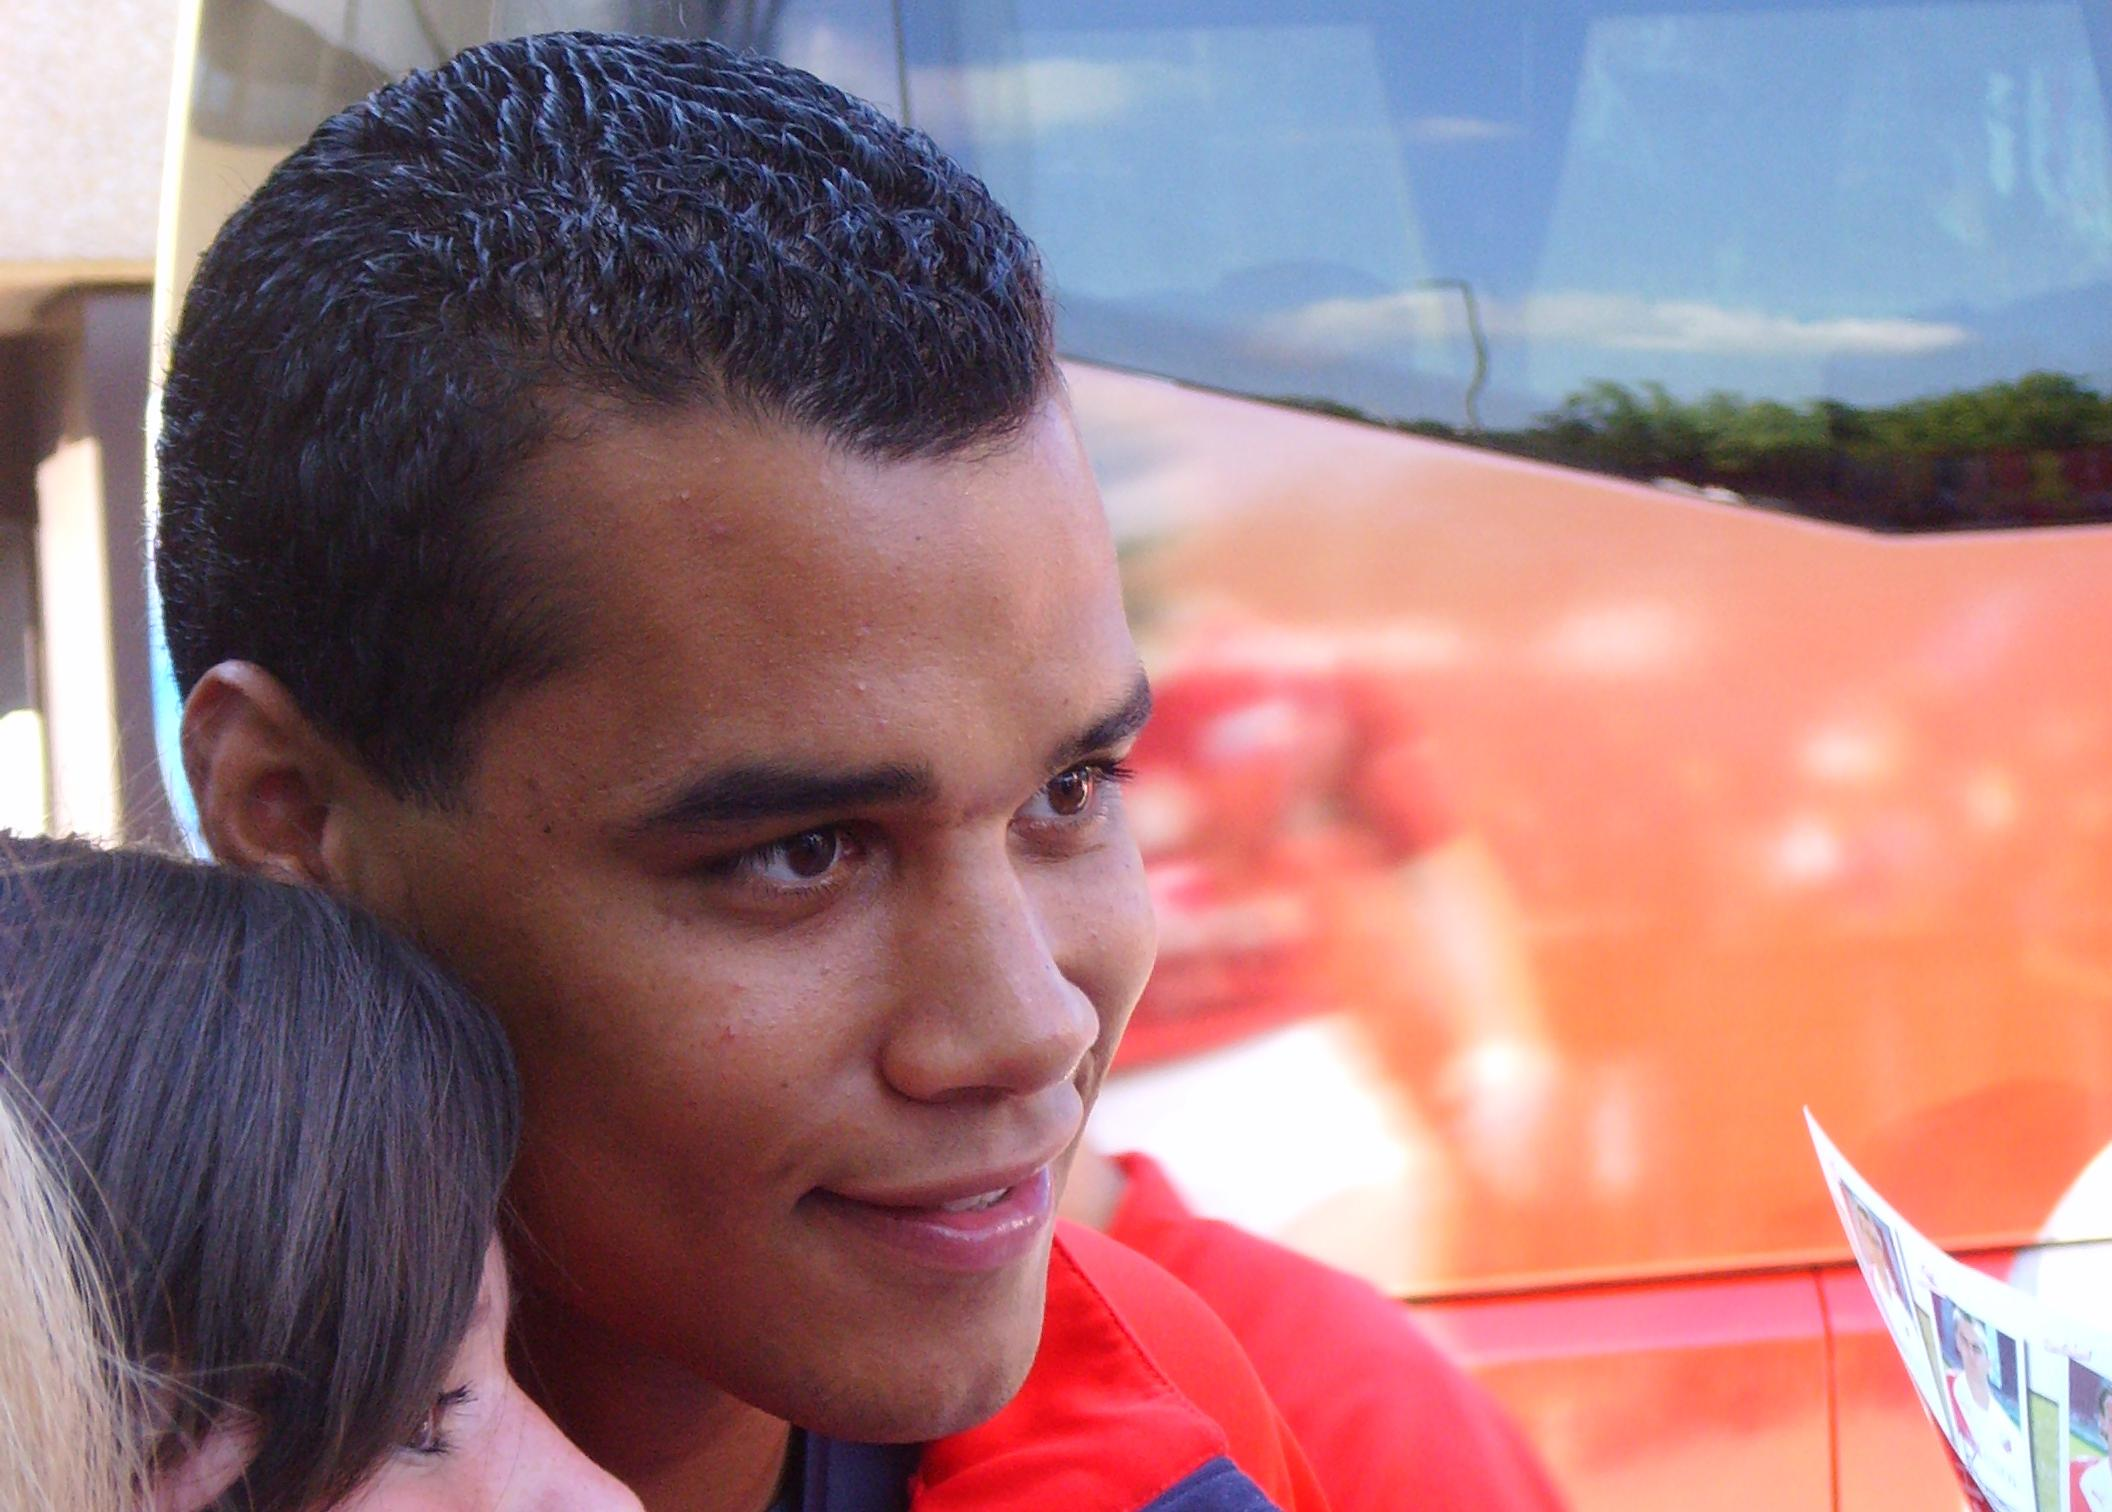 The 34-year old son of father (?) and mother(?) Michel Vorm in 2018 photo. Michel Vorm earned a  million dollar salary - leaving the net worth at 6.3 million in 2018